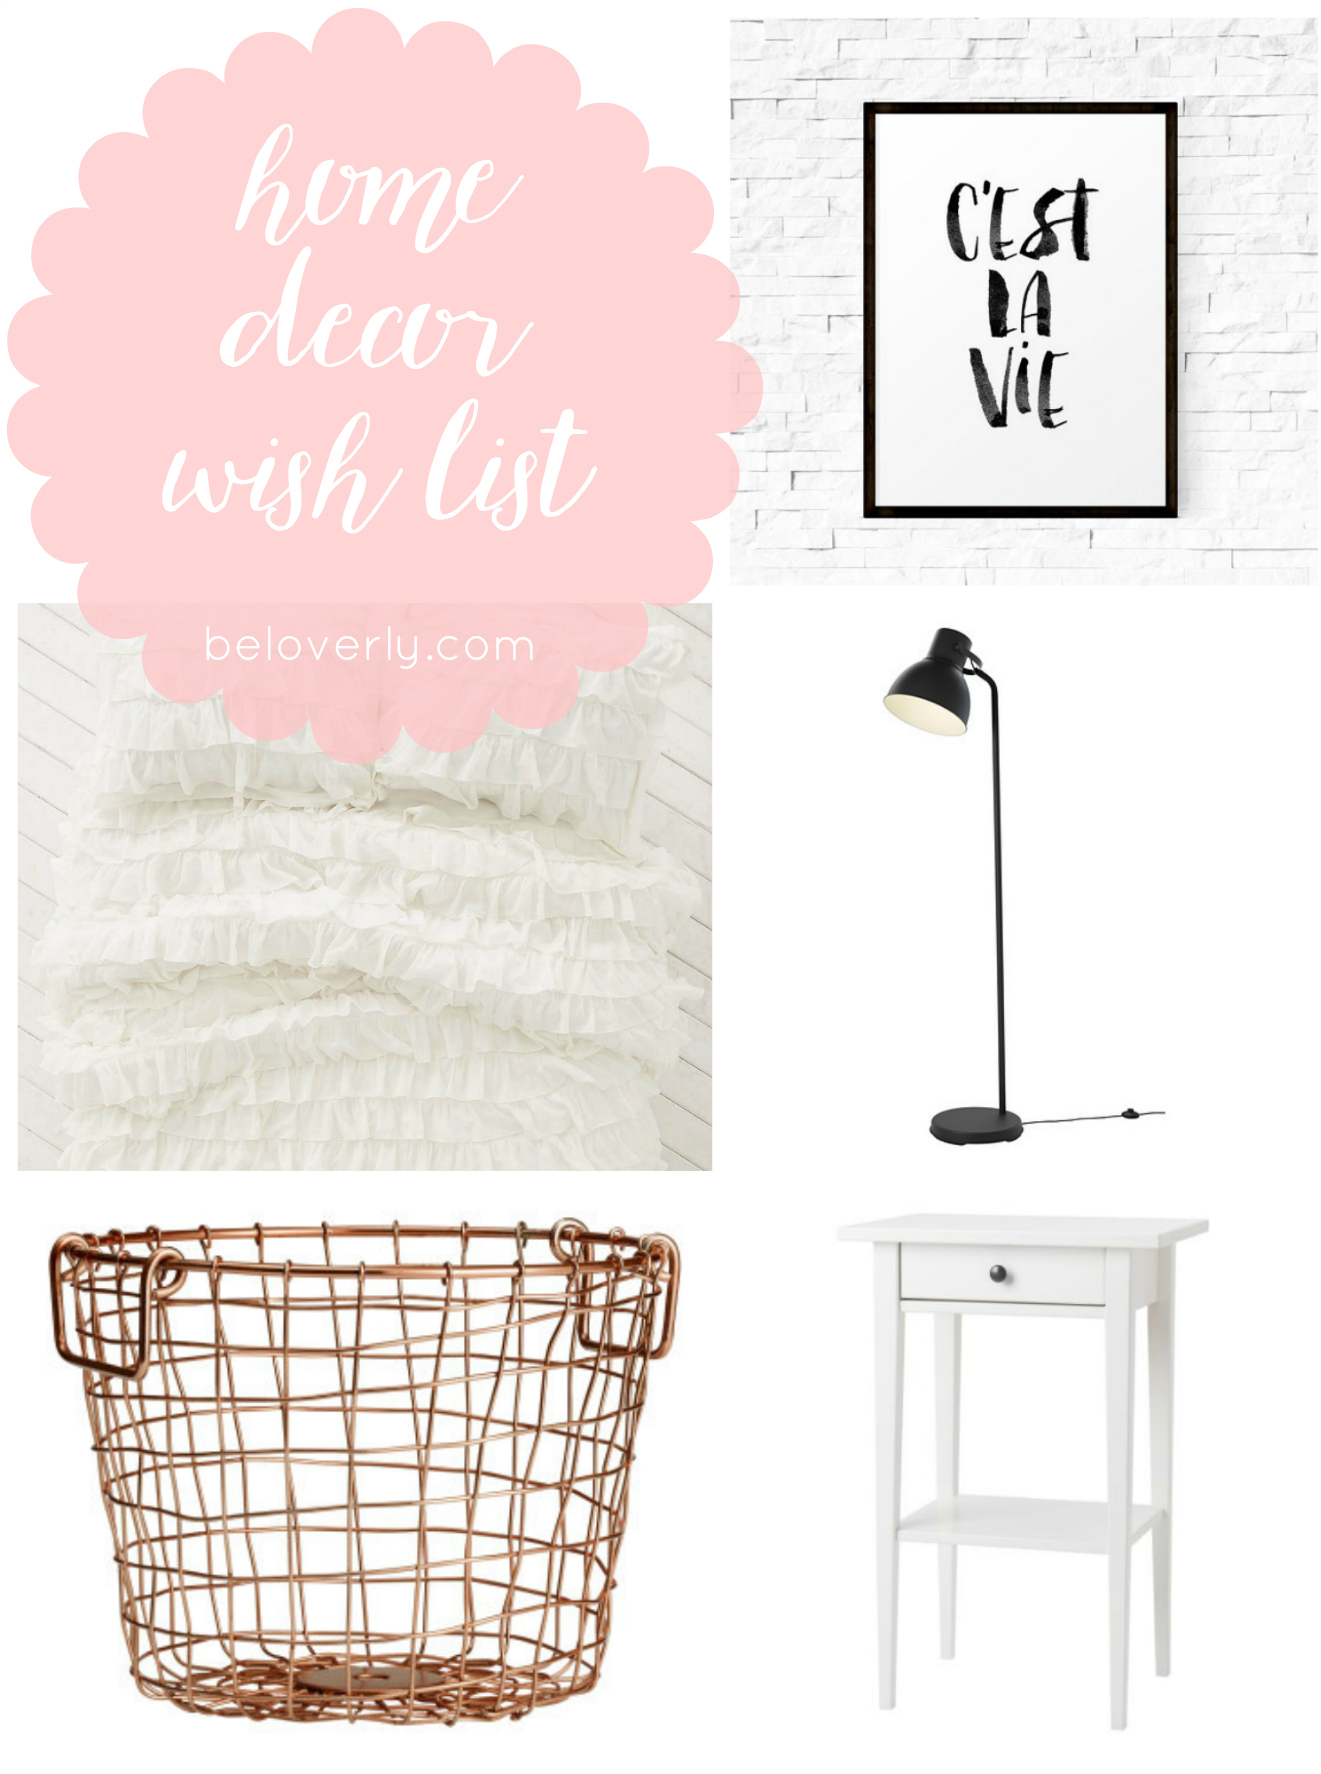 homedecorwishlist